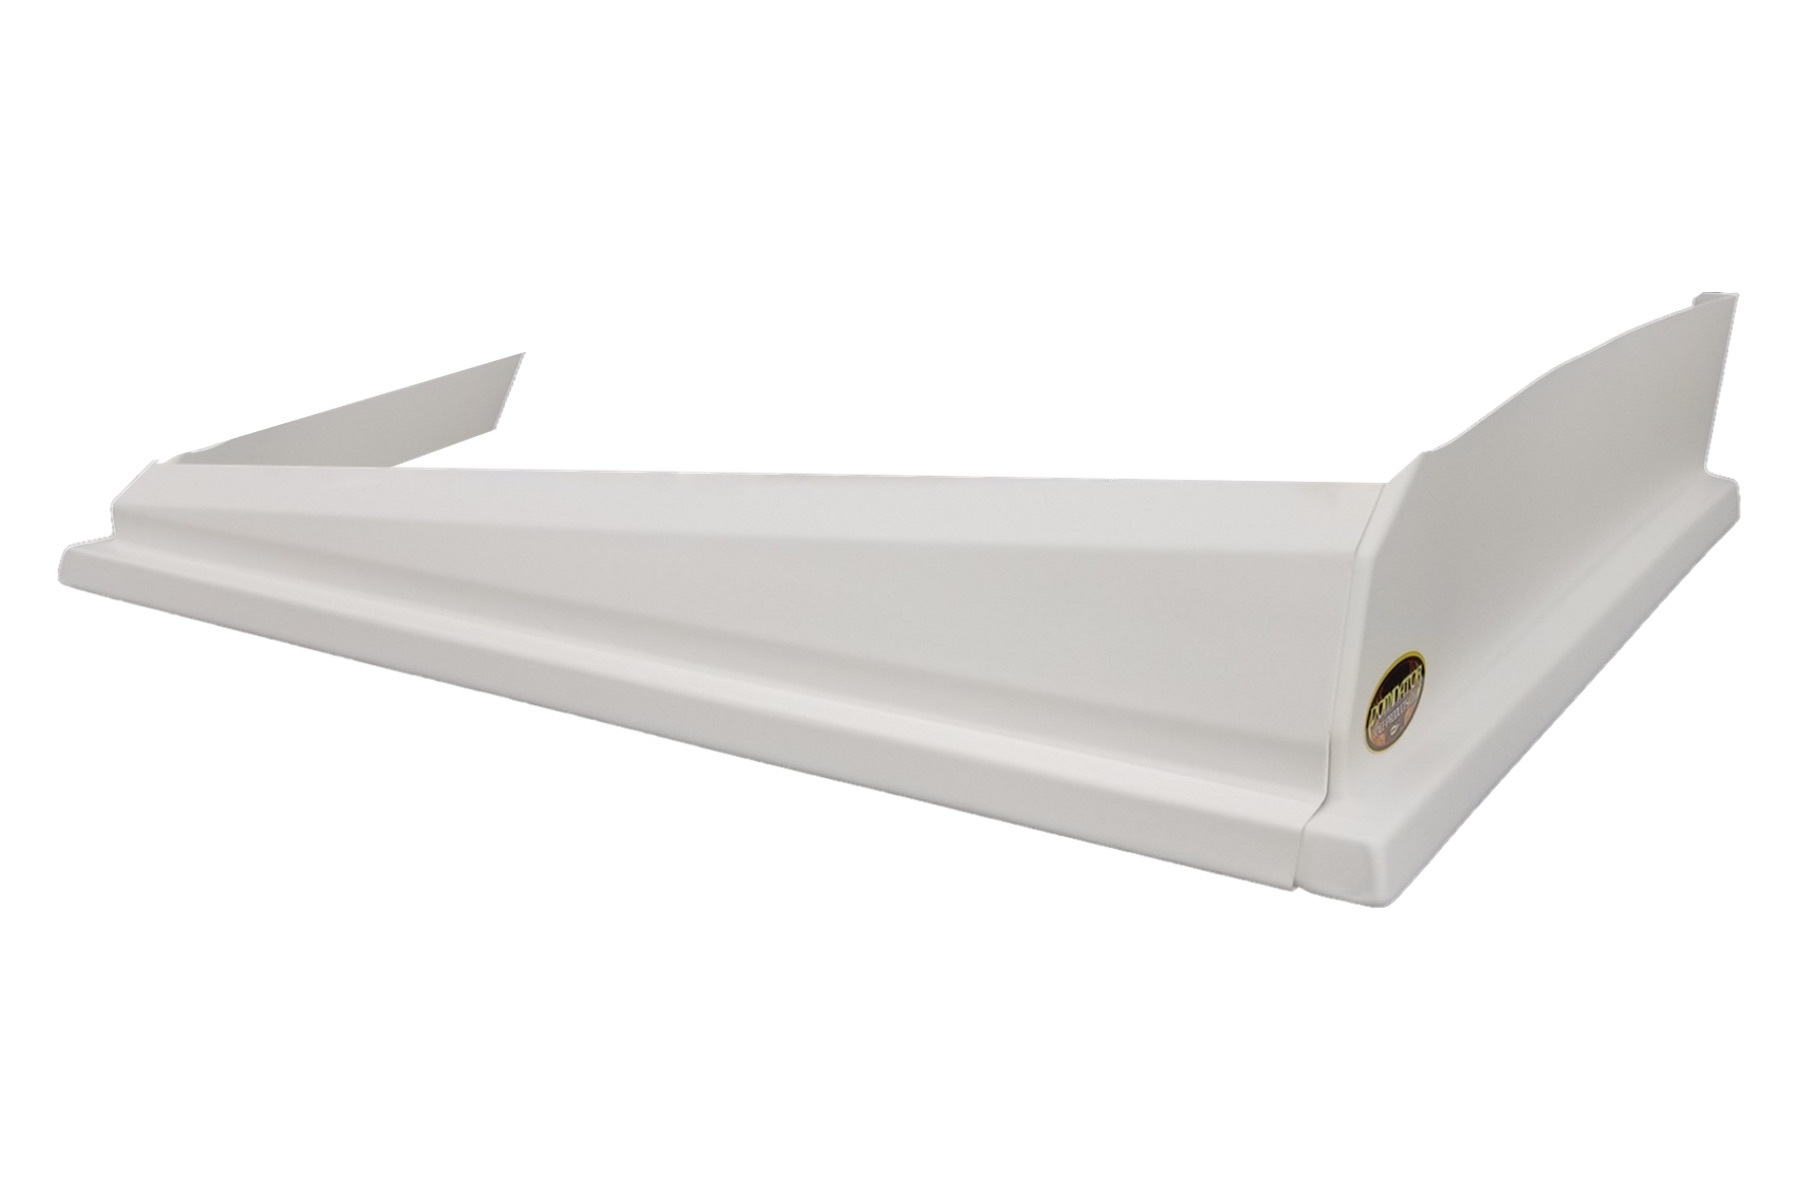 Dominator Racing Products 408-WH Air Valance, 3 Piece, Molded Plastic, White, Dirt Modified, Each